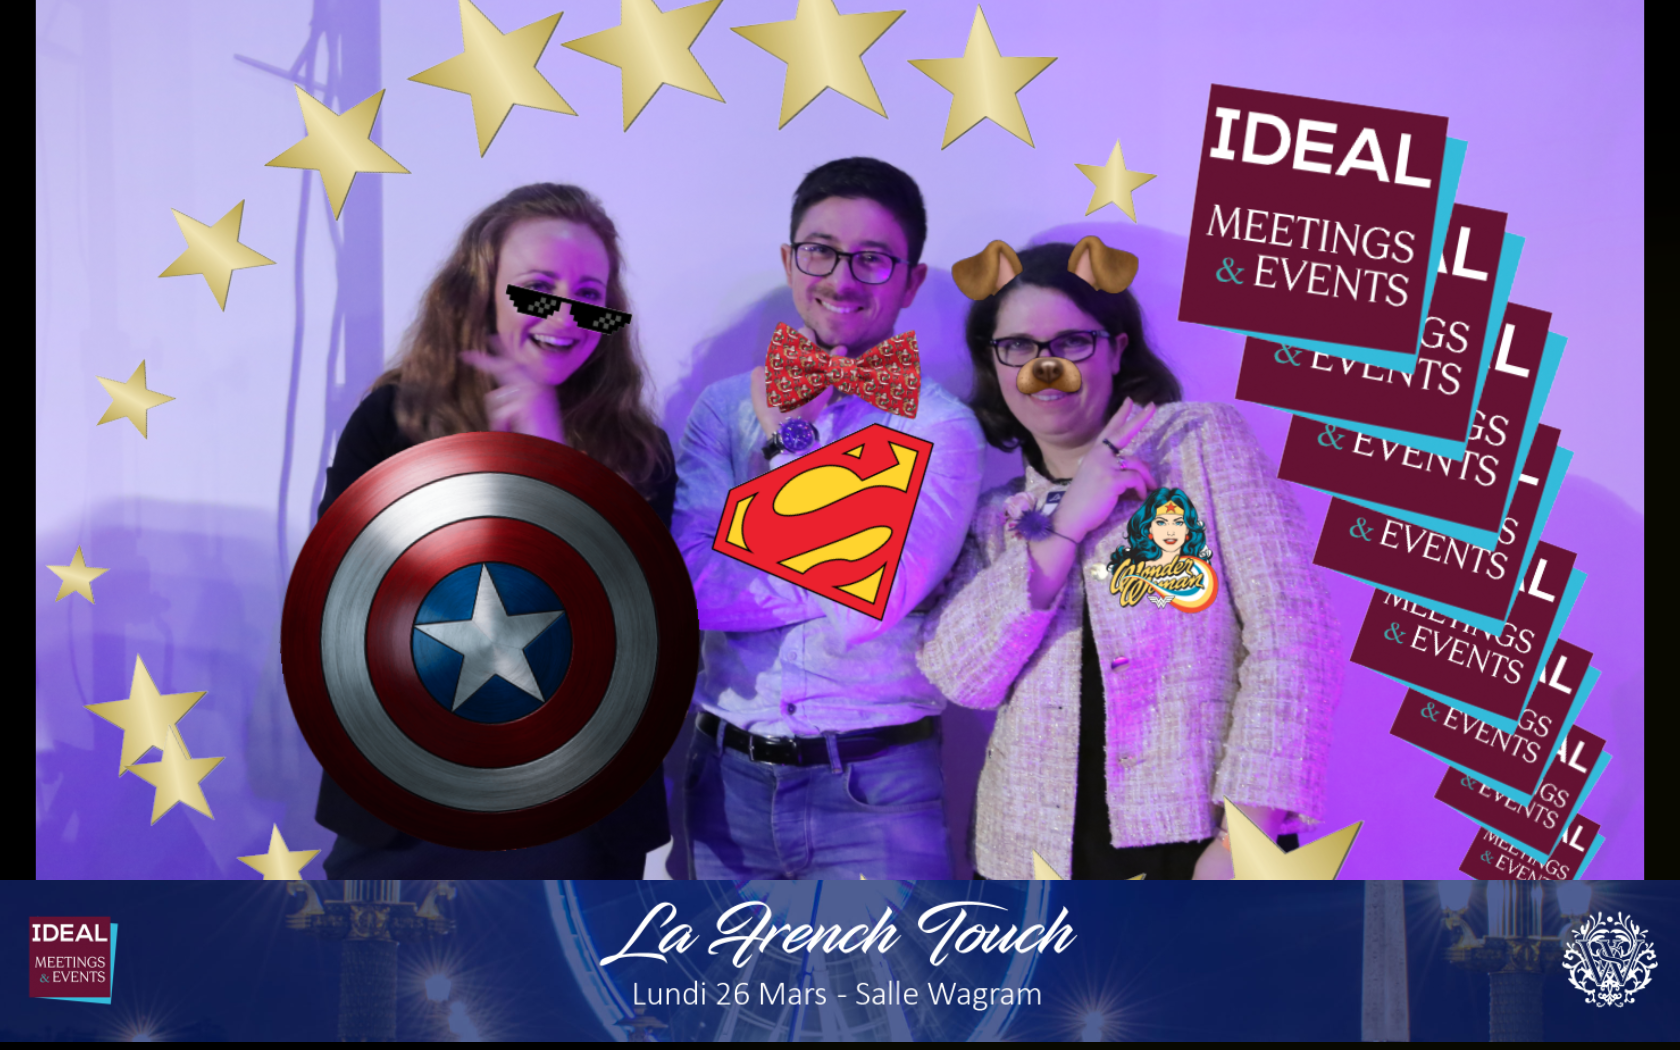 Team-Building entreprise - Team-Building entreprise Ideal Meetings & Events